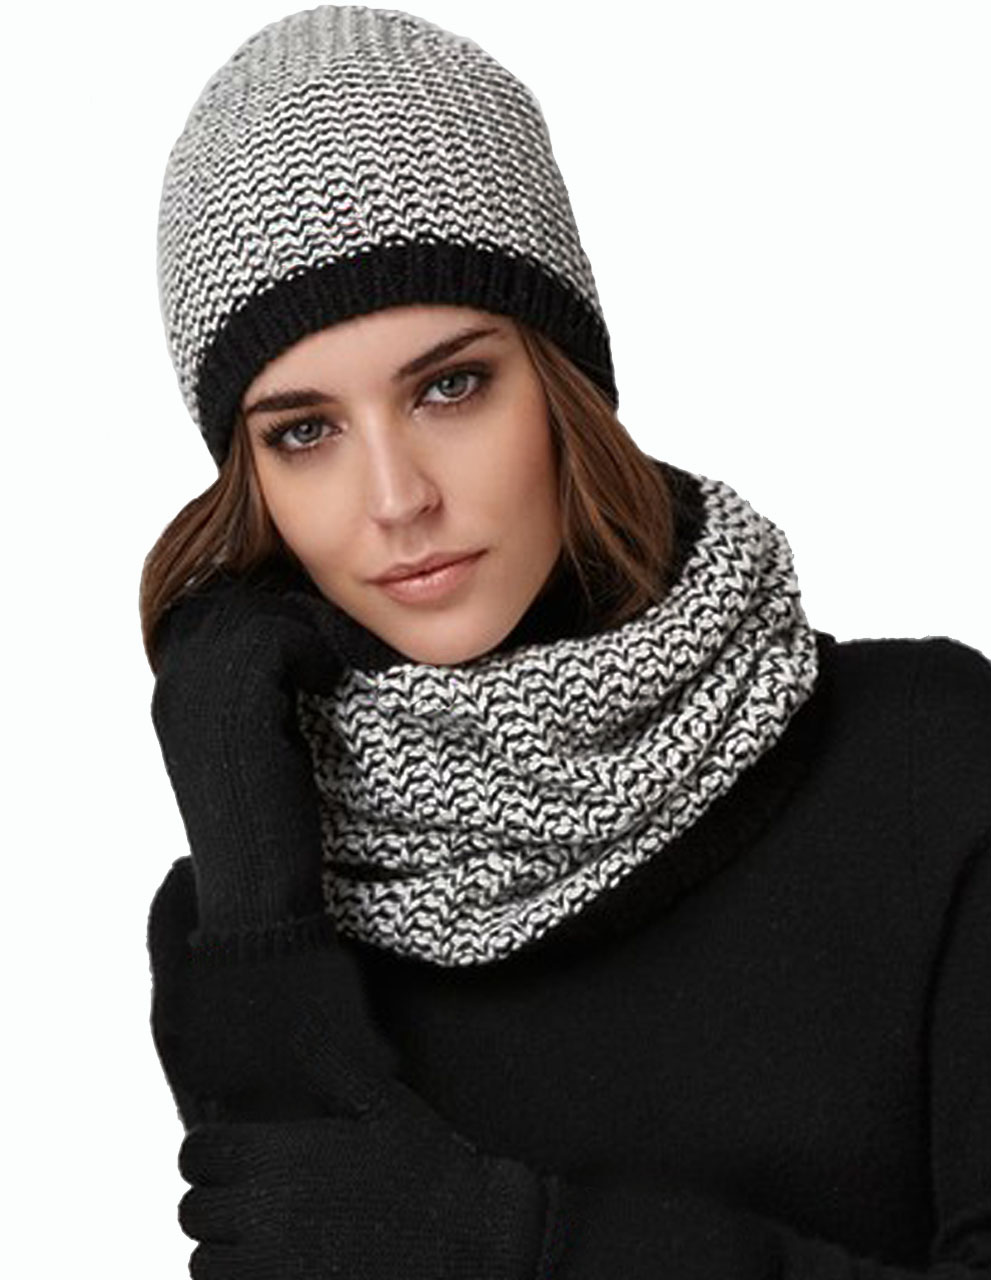 Unisex Chevron Alpaca Circle Scarf and Beanie Black / Cream - Female Model